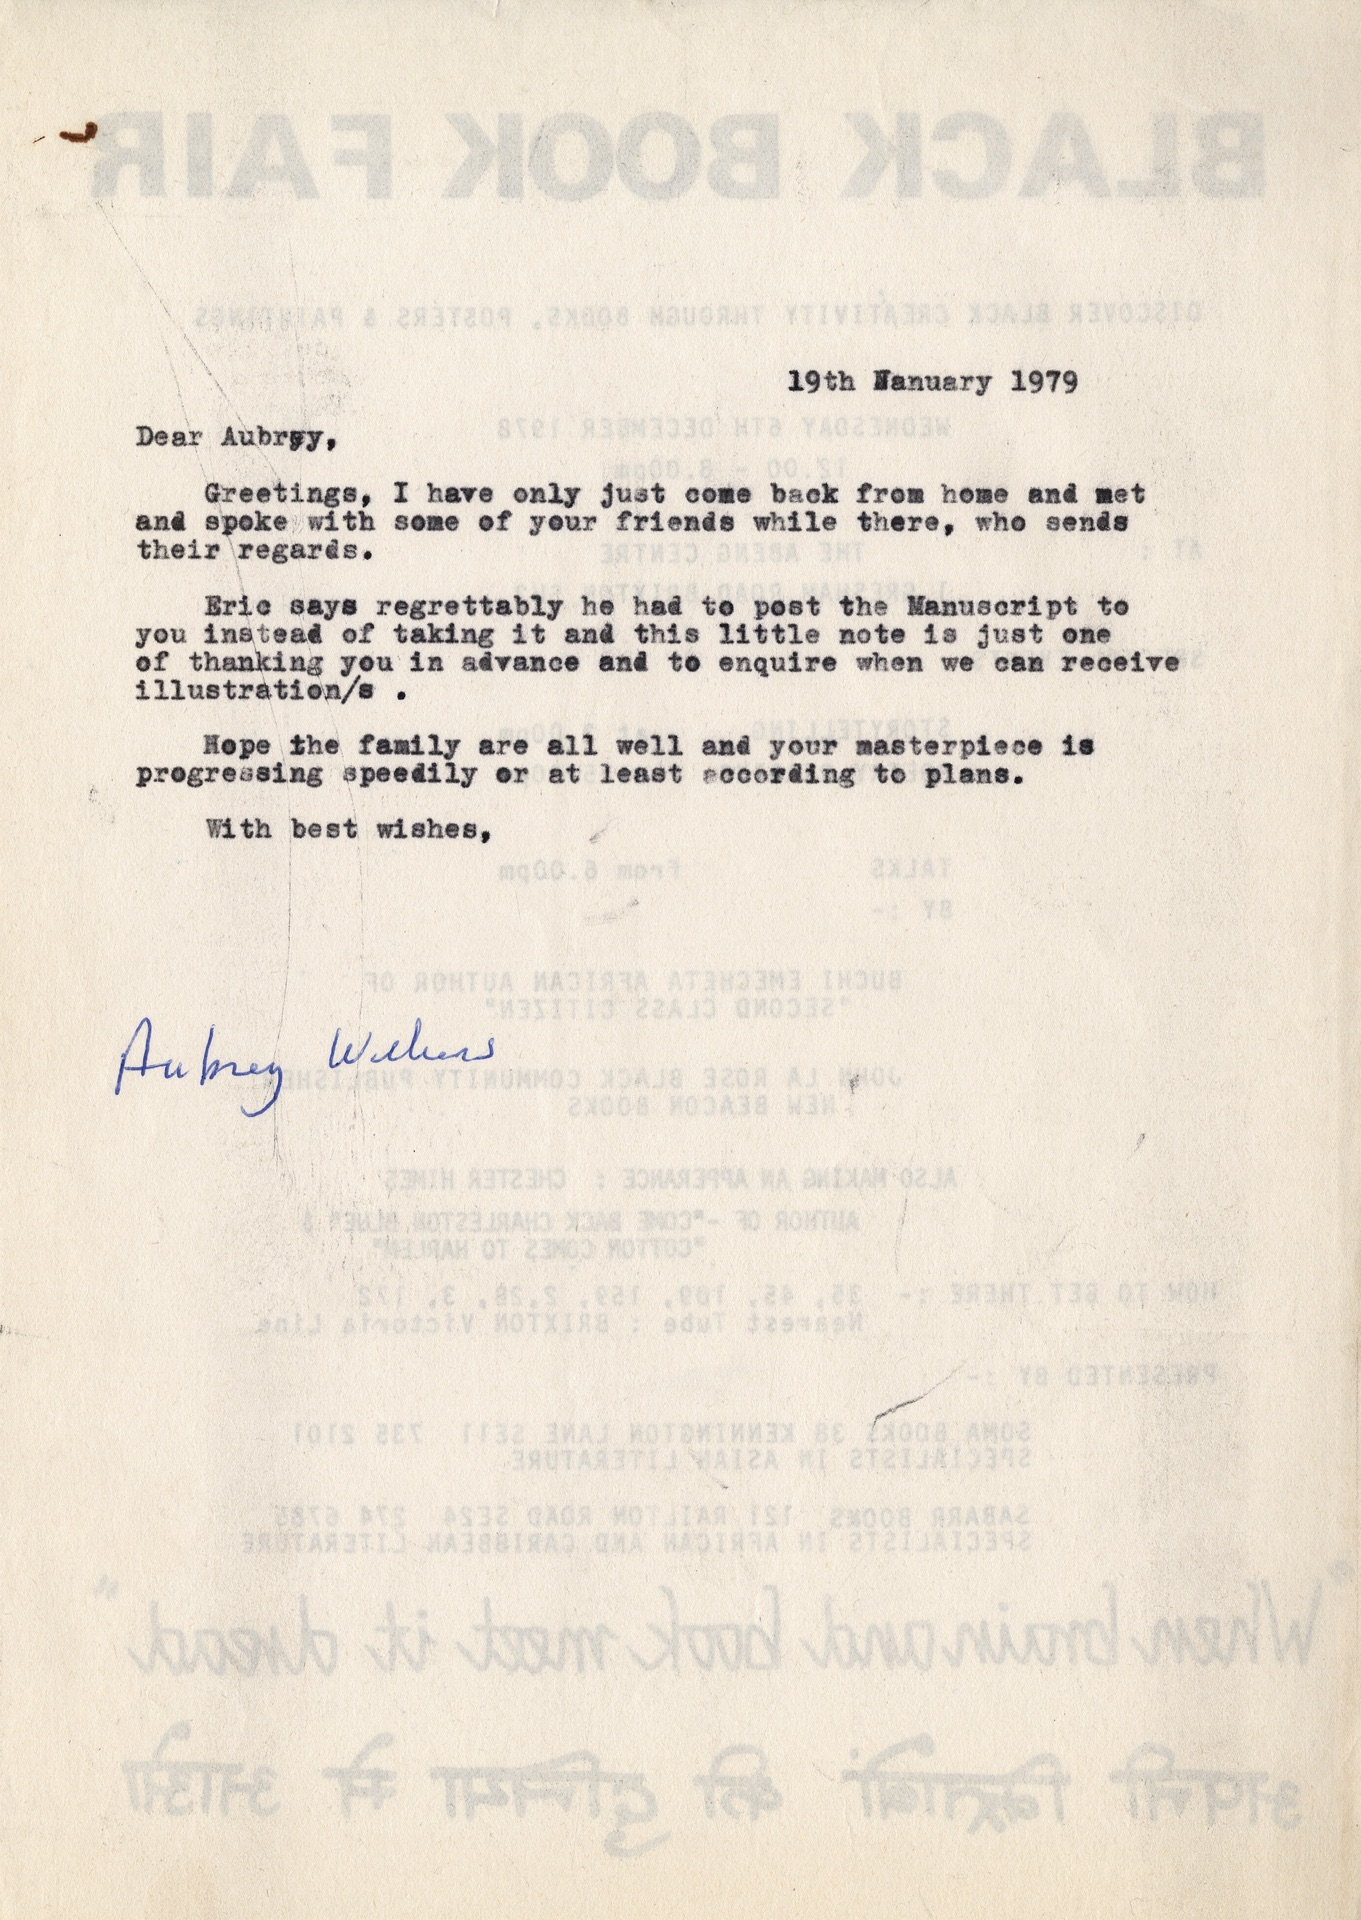 _07 Letter to Aubrey Williams. 19th Jan. 1979. Huntley Archives at London Metropolitan Archives-Arch